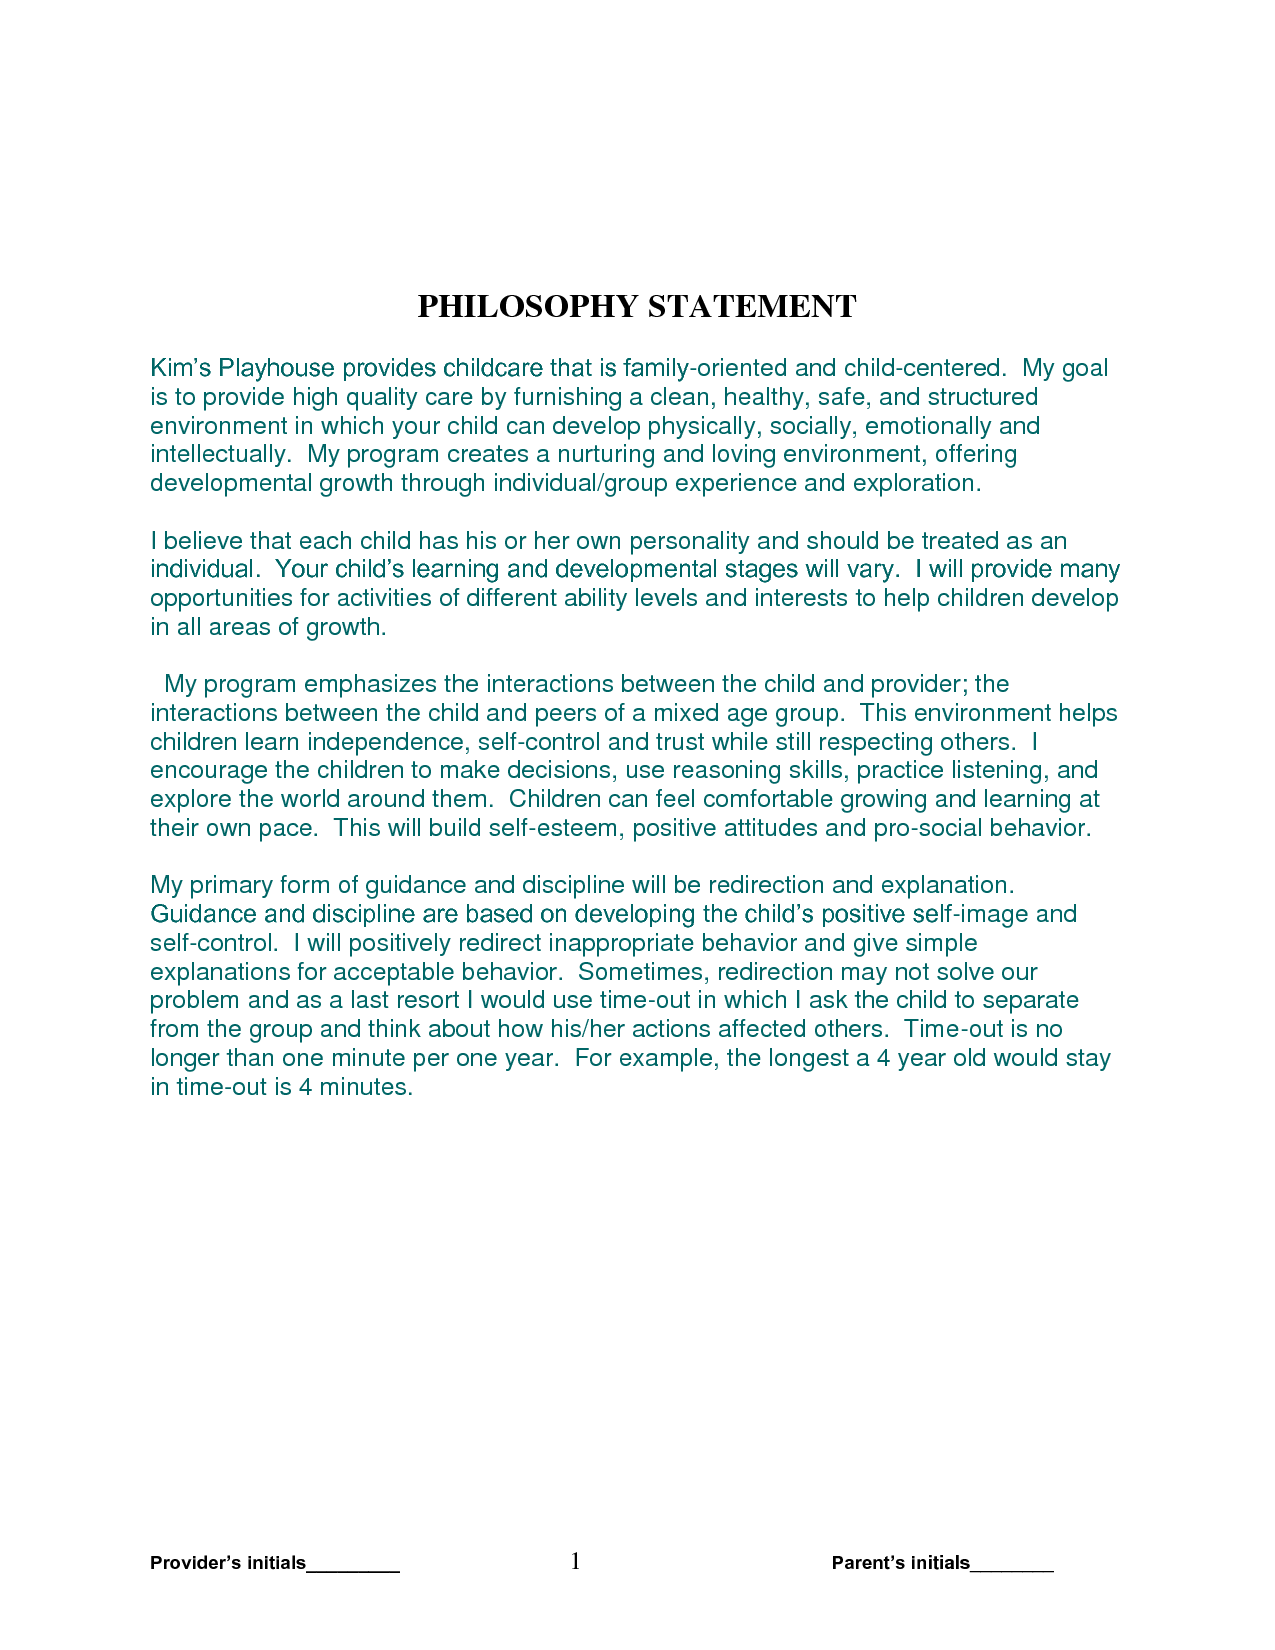 Day Care Philosophy Statement Examples and Teaching Philosophy Examples Business Graduate assistant Resume